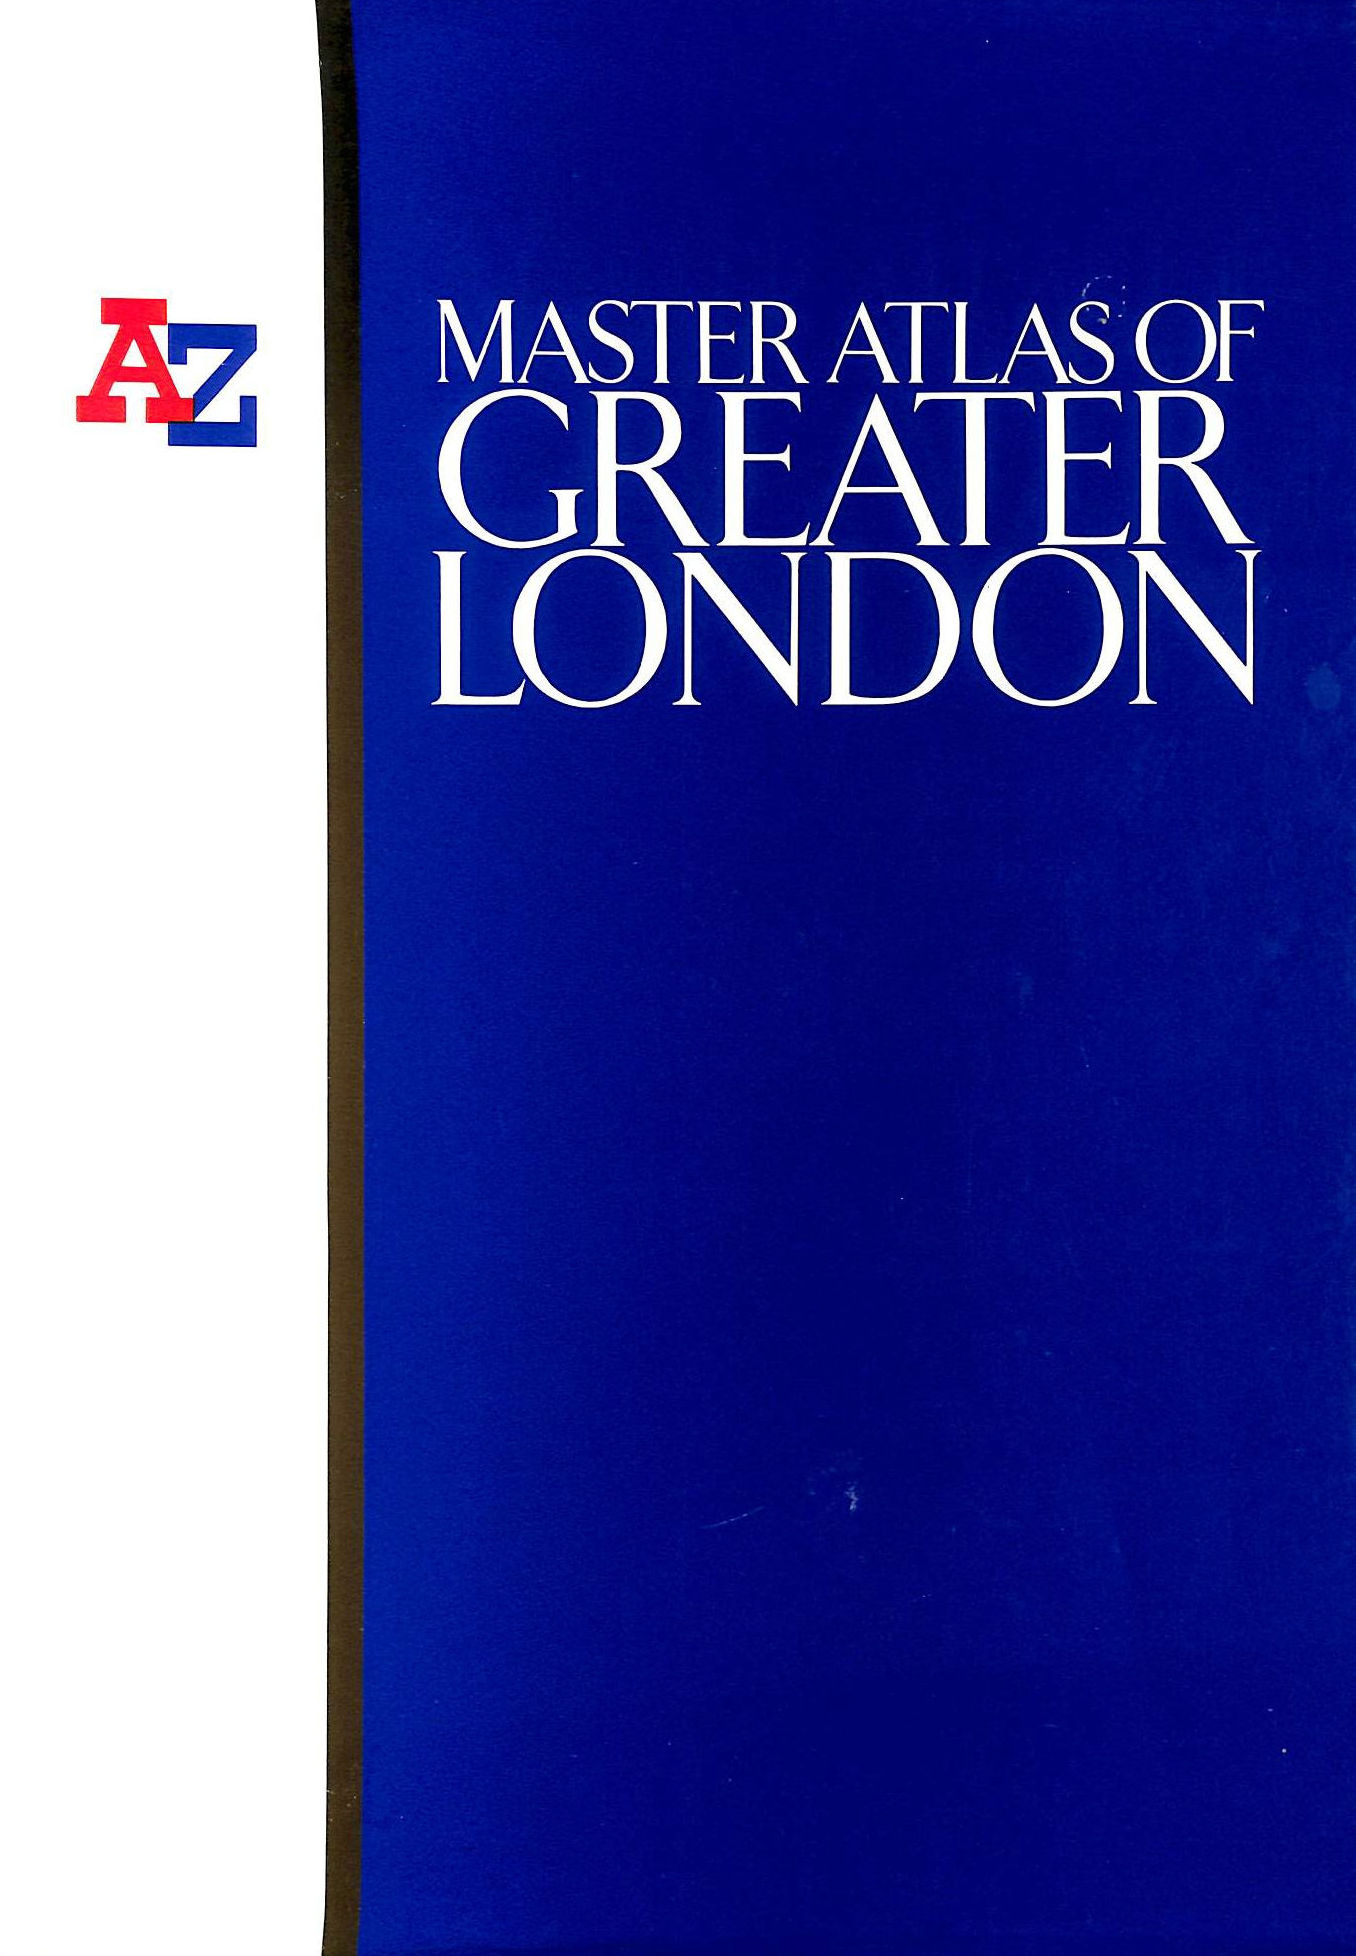 Image for A. to Z. Master Atlas of Greater London (London Street Atlases)